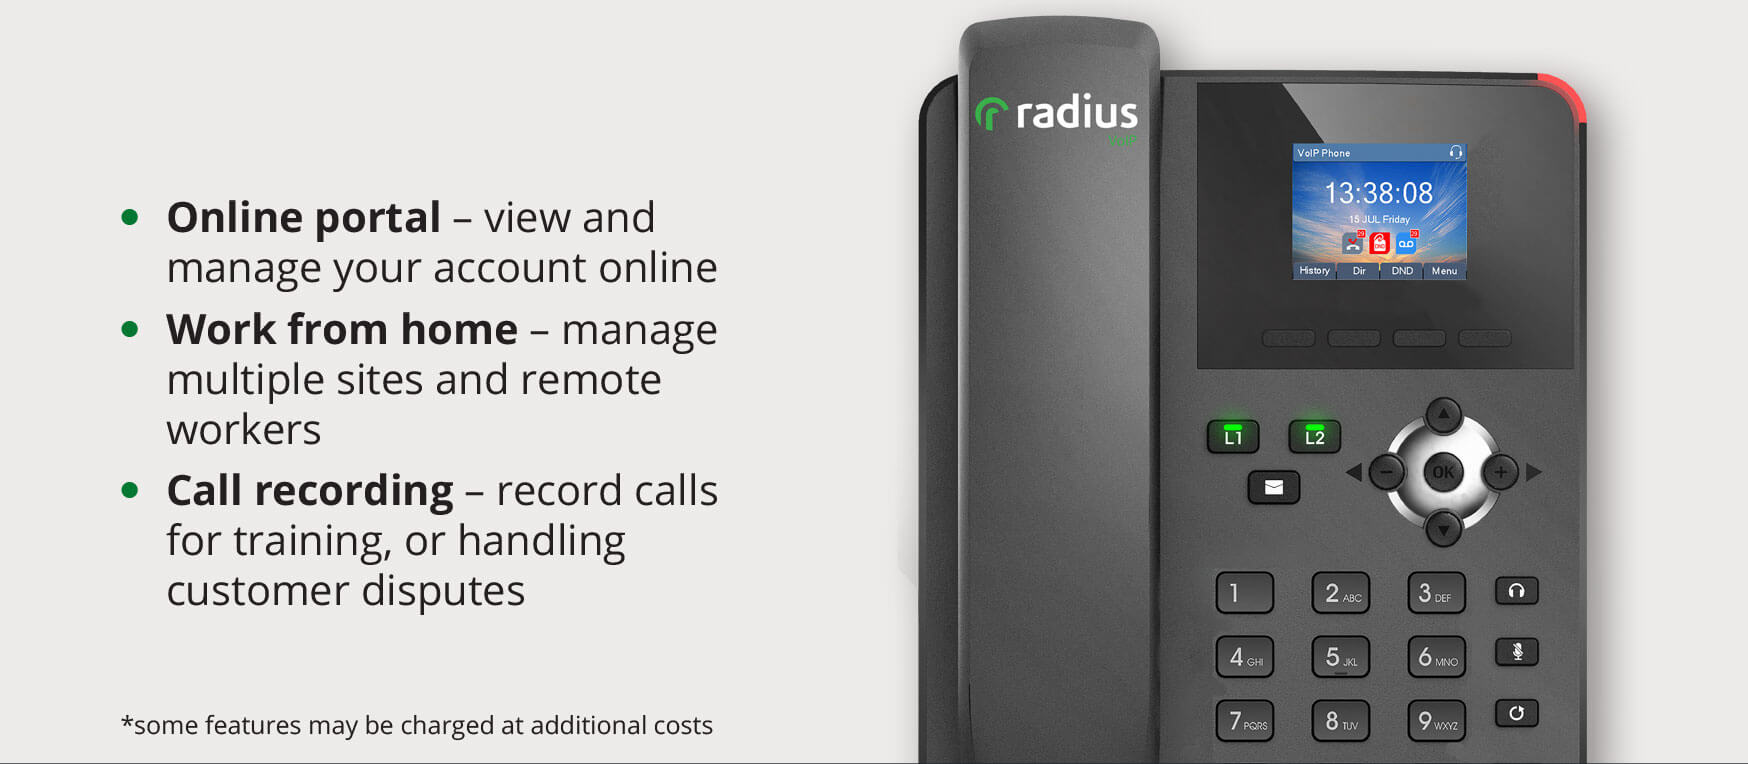 Online portal – view and manage your account online. Work from home – manage multiple sites and remote workers. Call recording – record calls for training, or handling customer disputes.